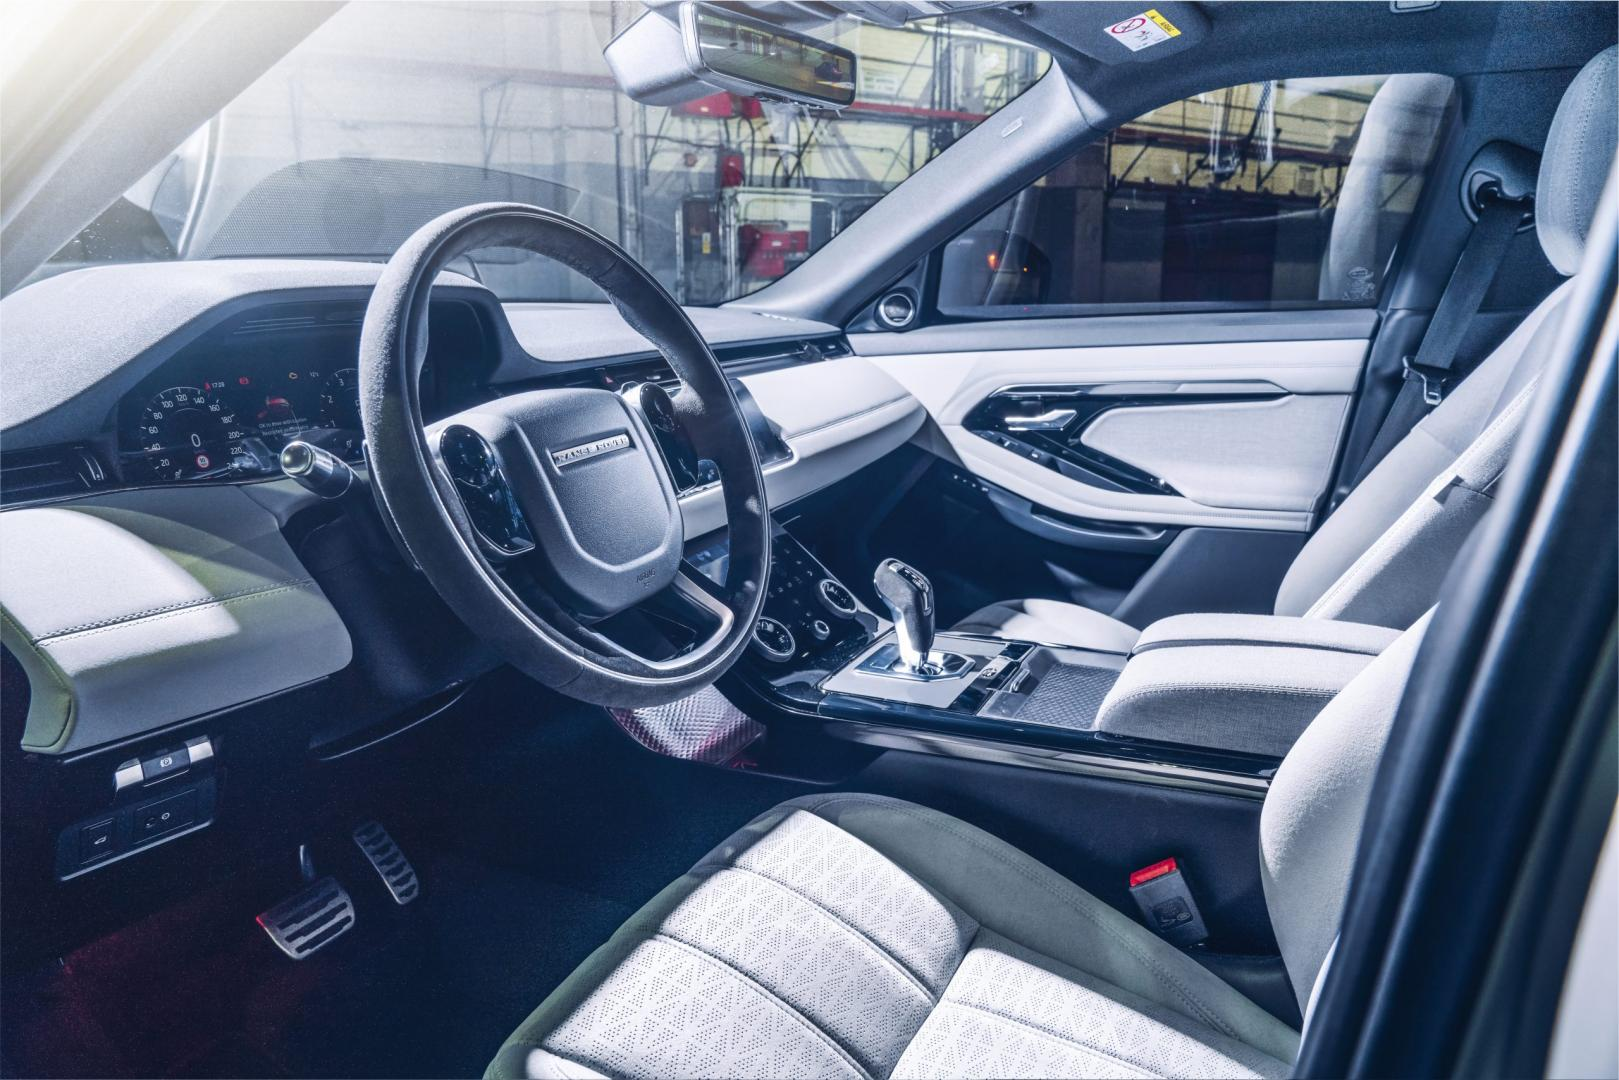 Range Rover Vogue interieur